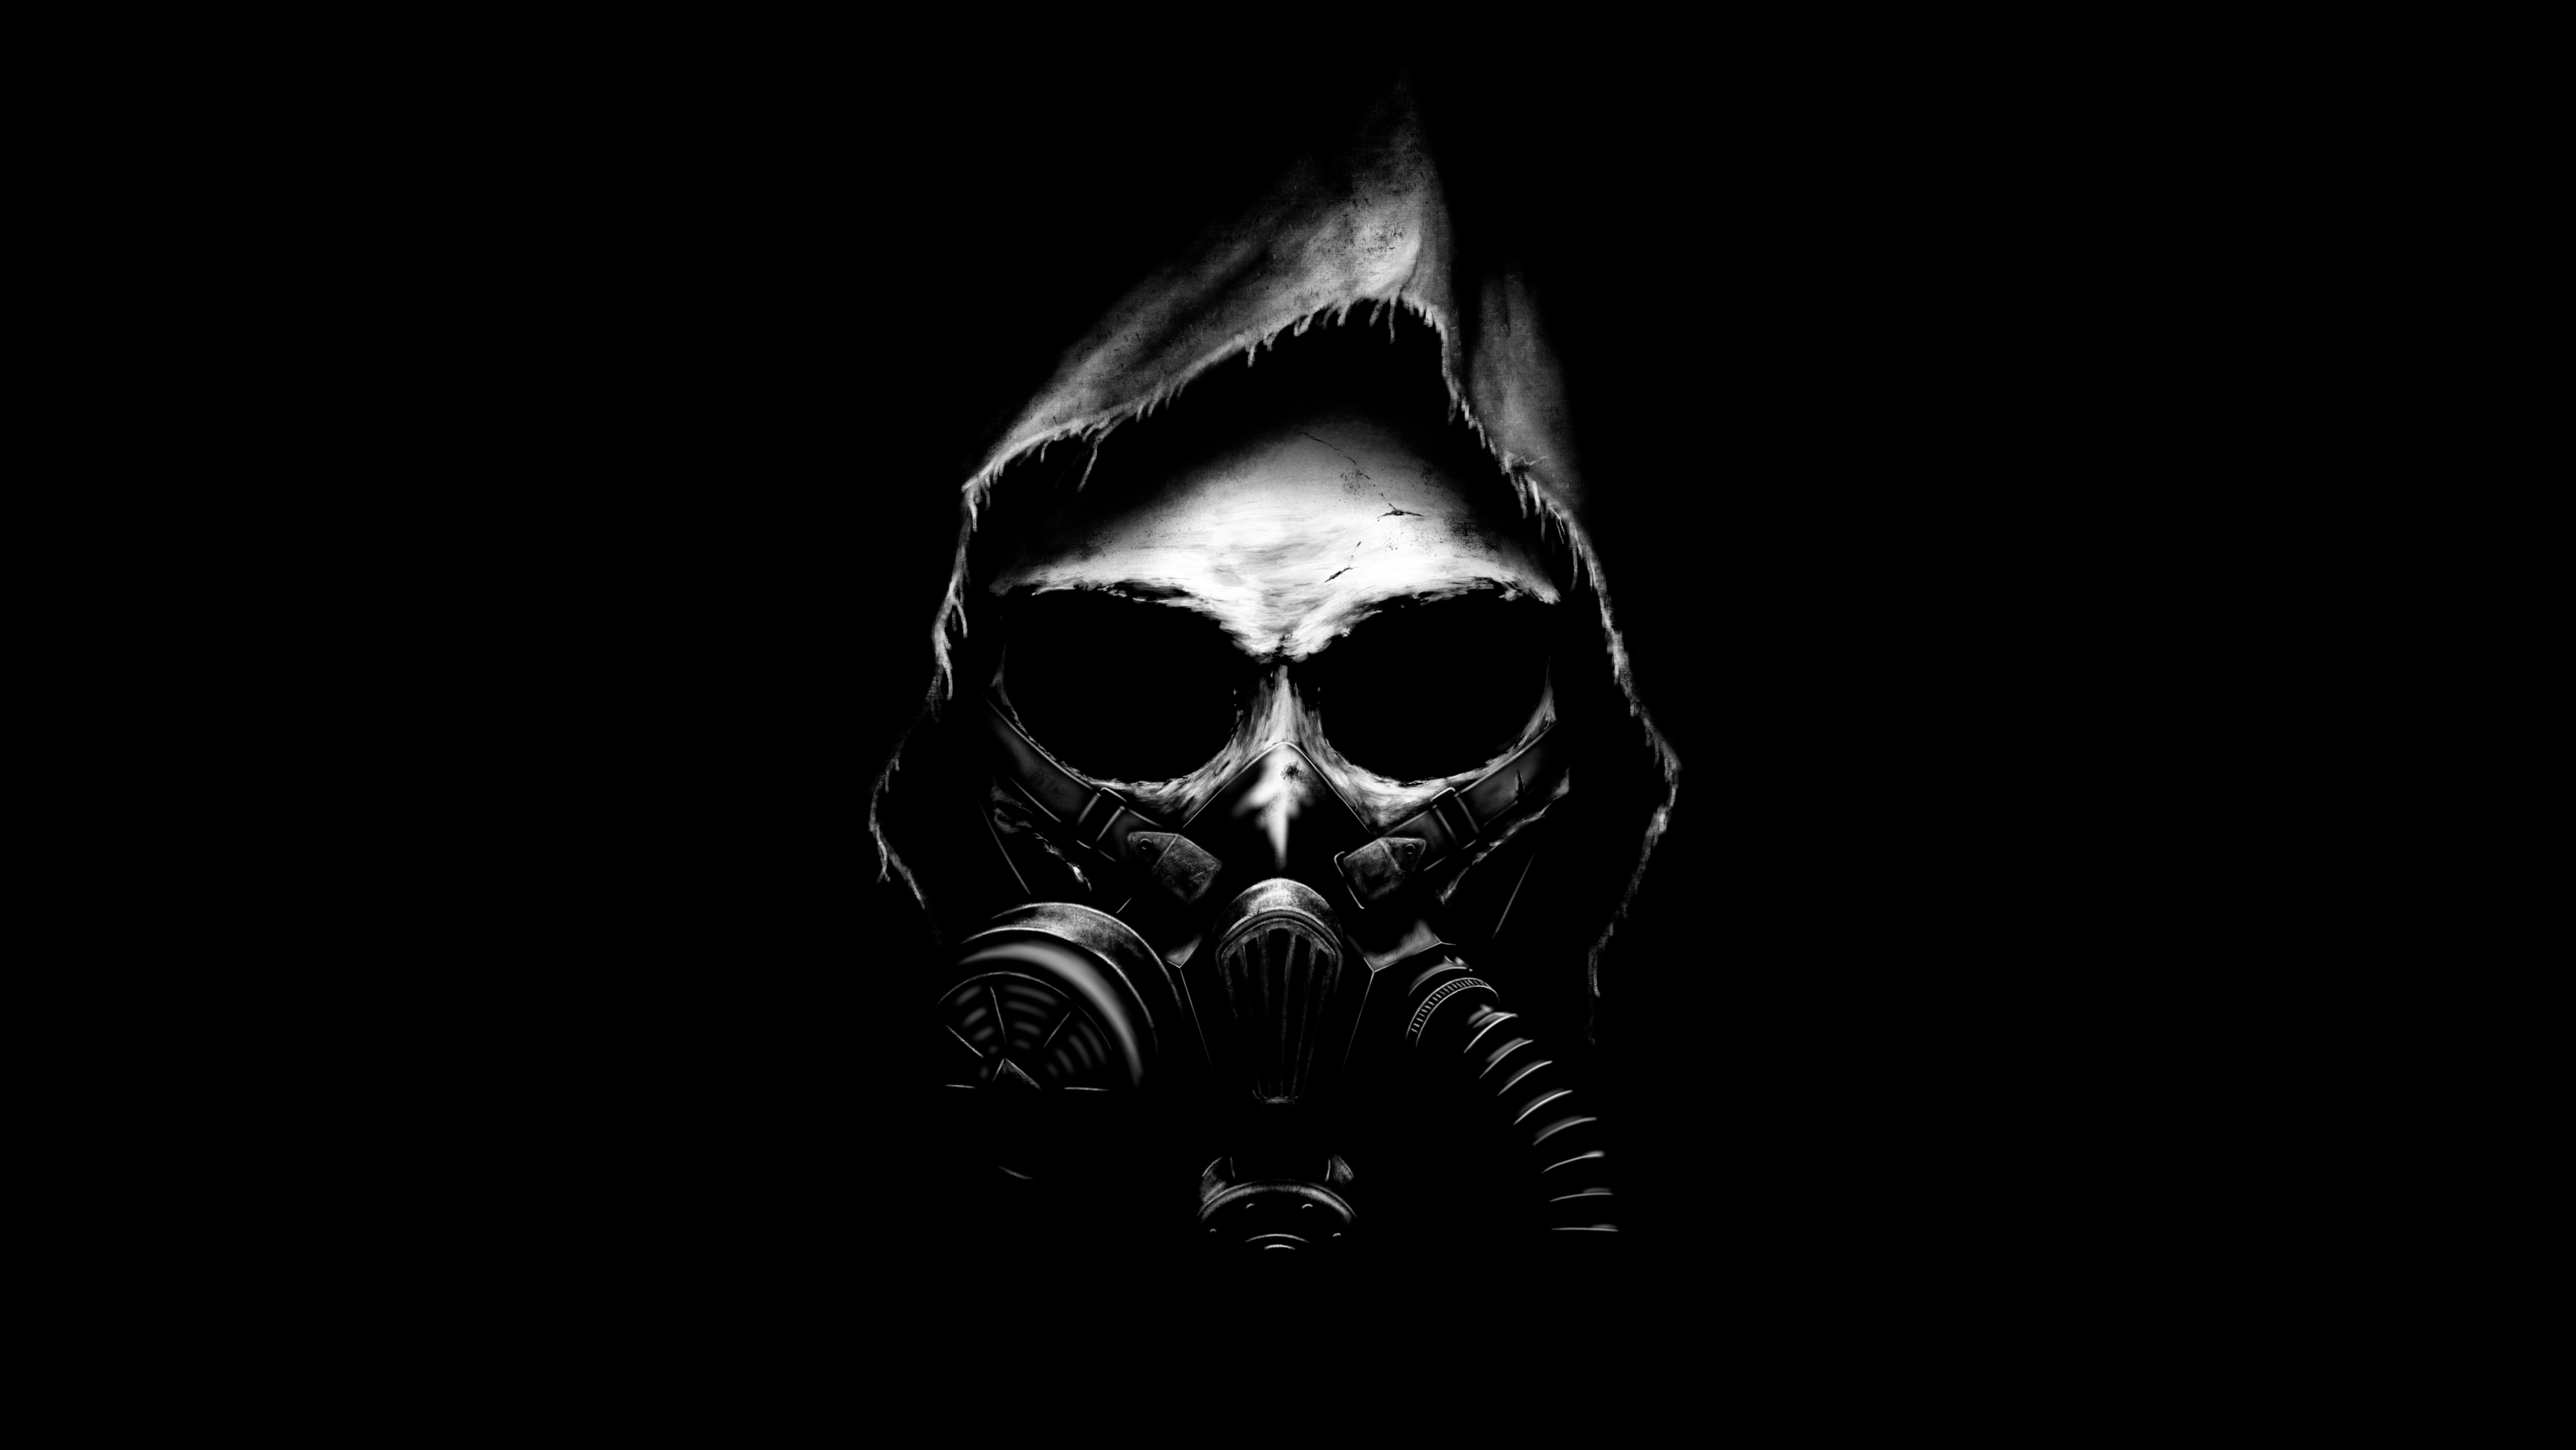 skull-4622x2600-apocalypse-gas-mask-black-dark-background-minimal-4k-14887.thumb.png.1145d338812fd6016e0b852285a9f1d6.png